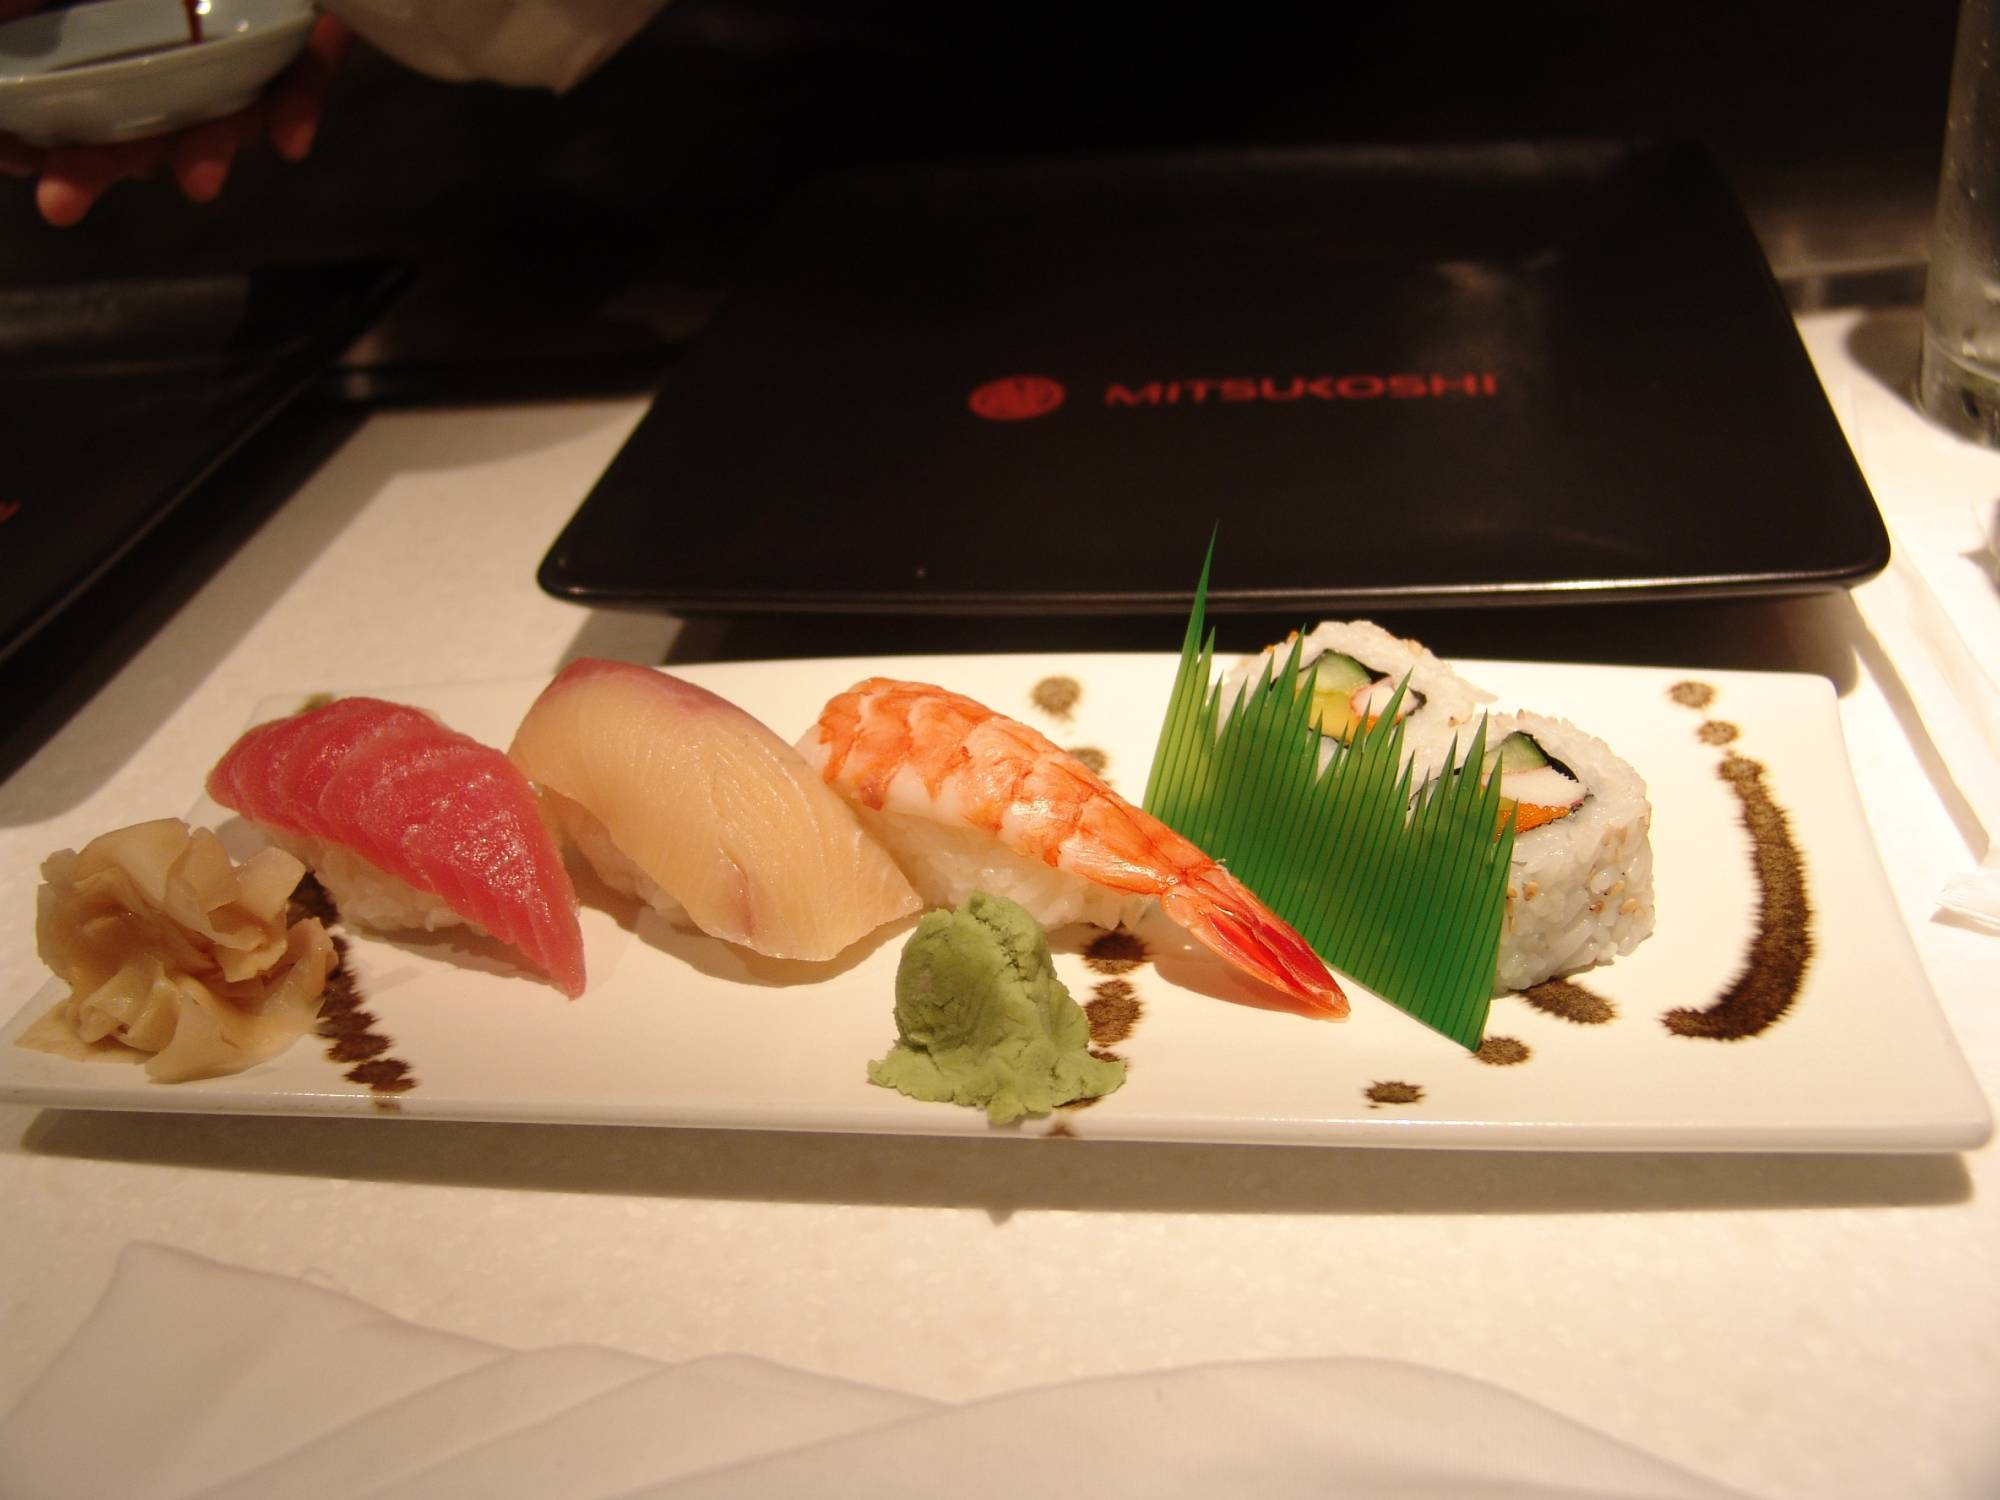 Enjoy a memorable meal at Teppan Edo in Epcot's World Showcase |PassPorter.com